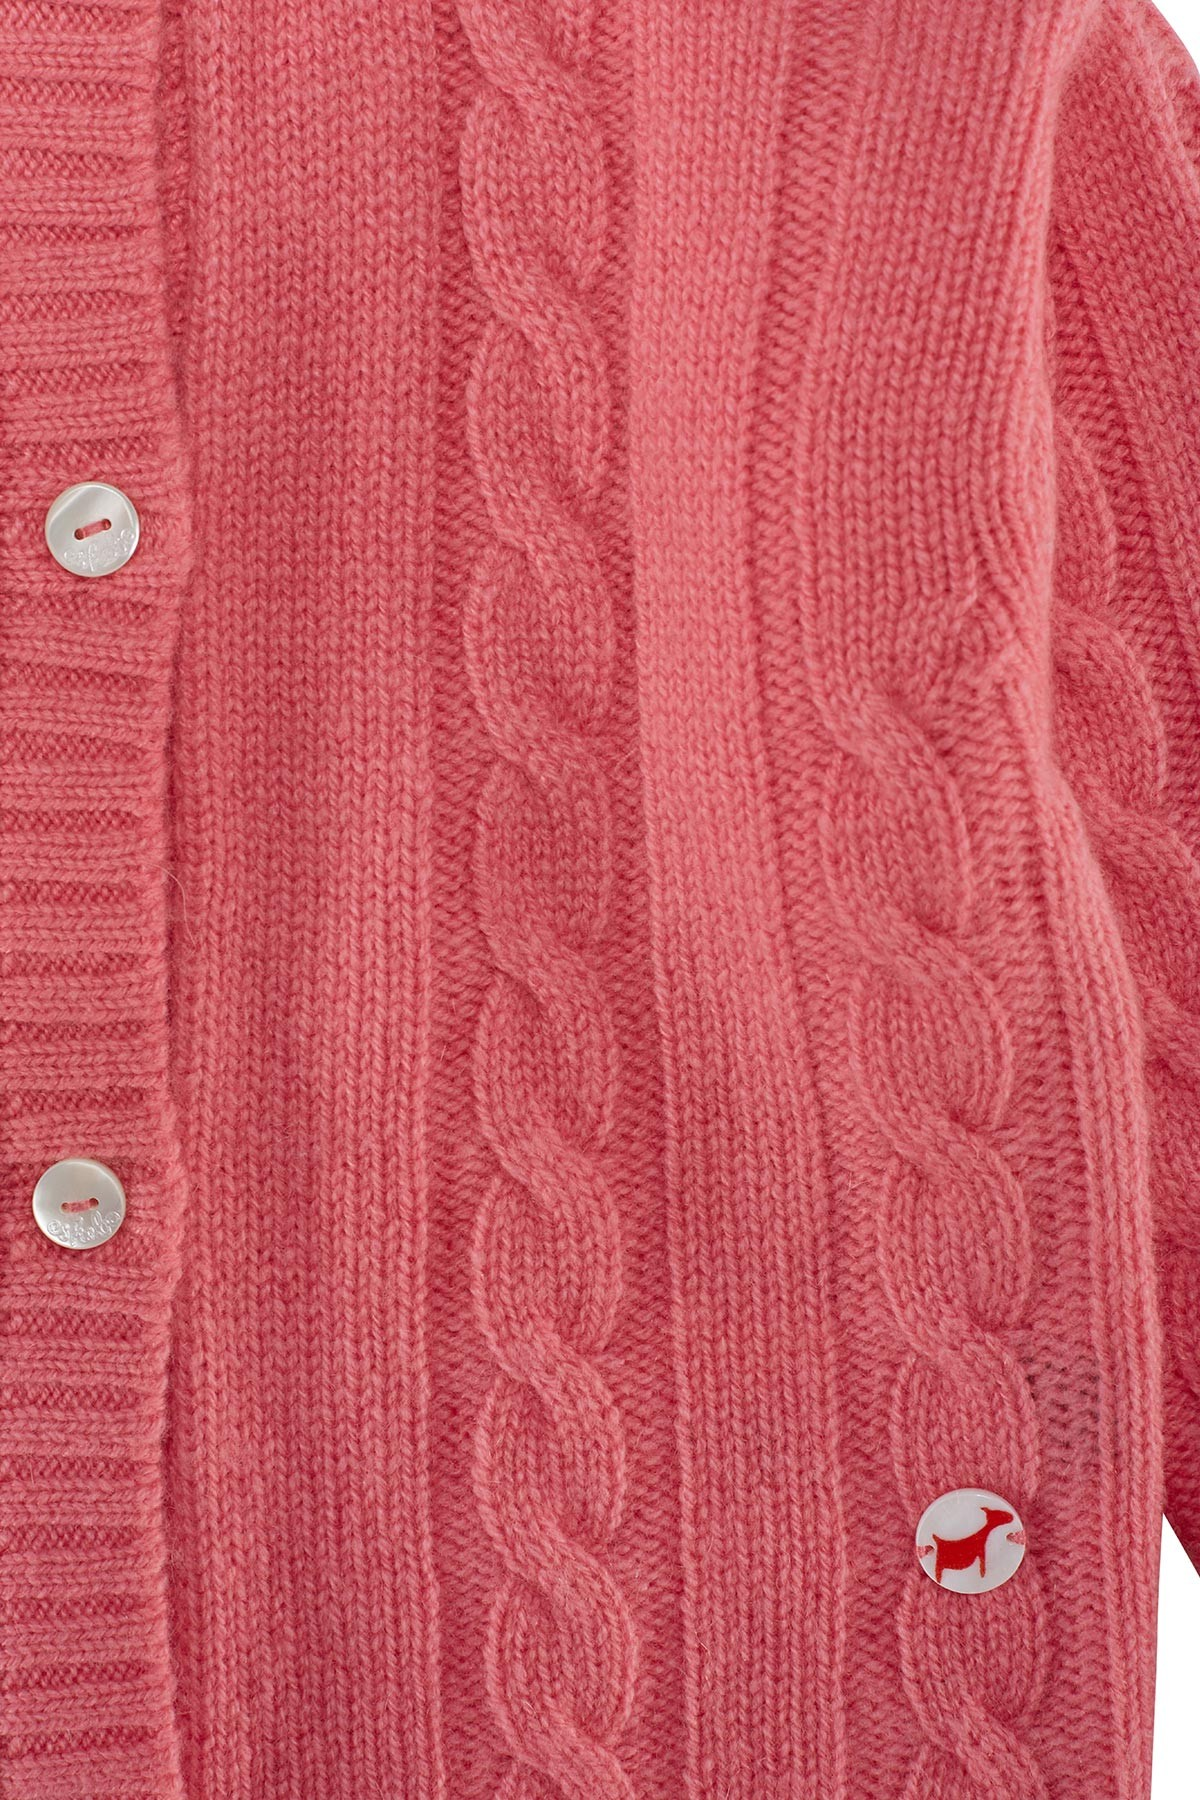 Cable knit cashmere jacket for babies hot pink